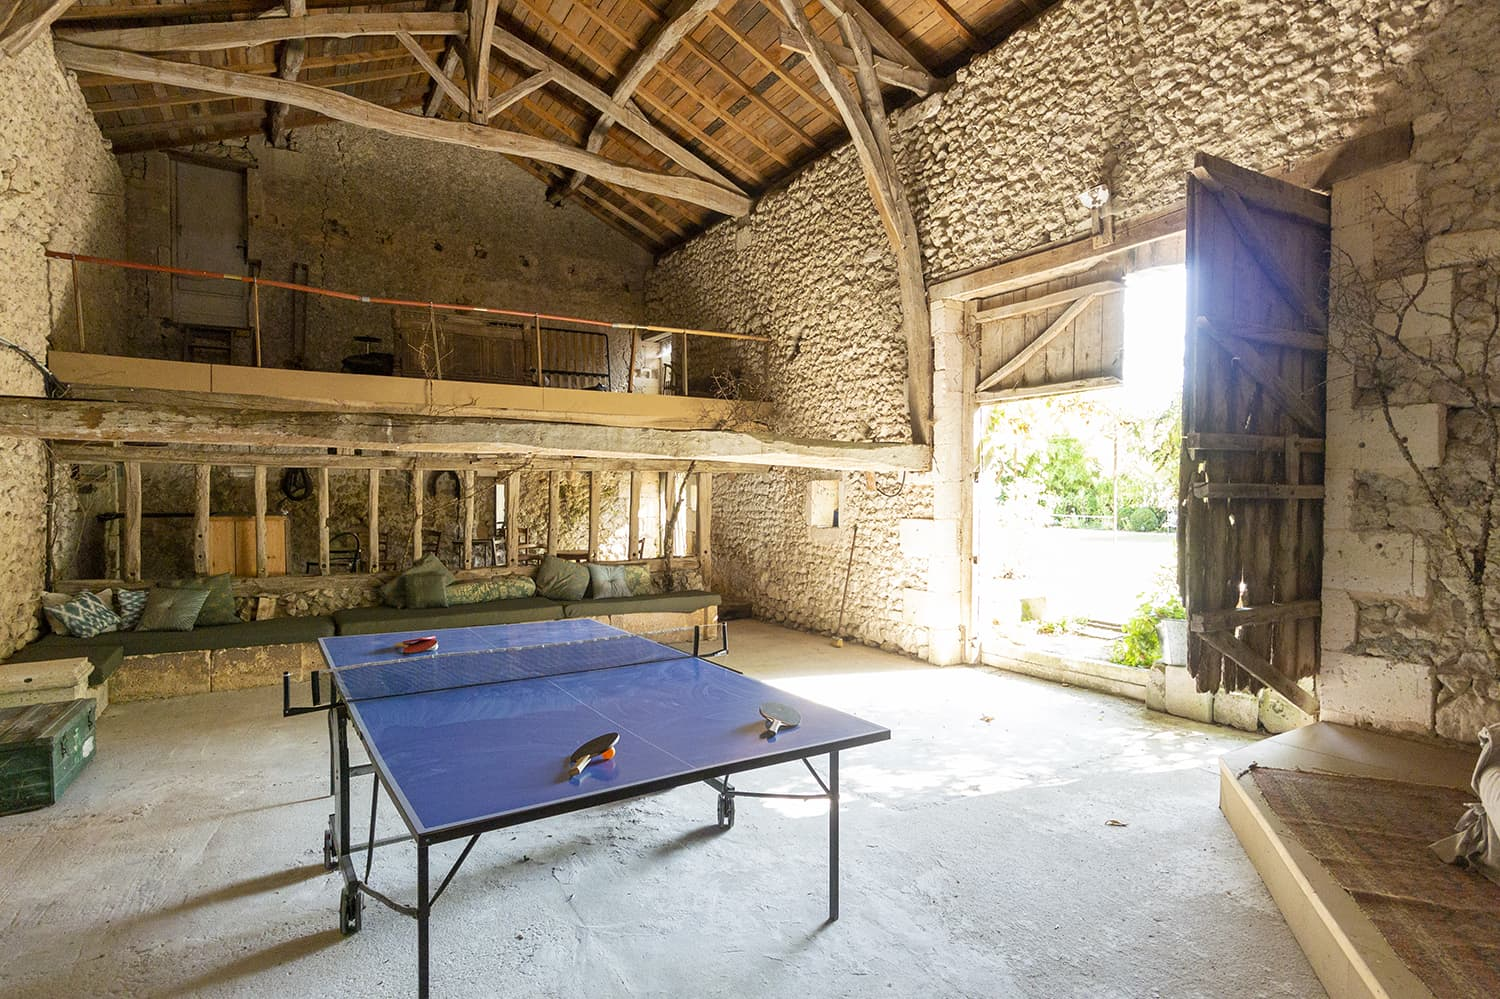 Barn with table tennis